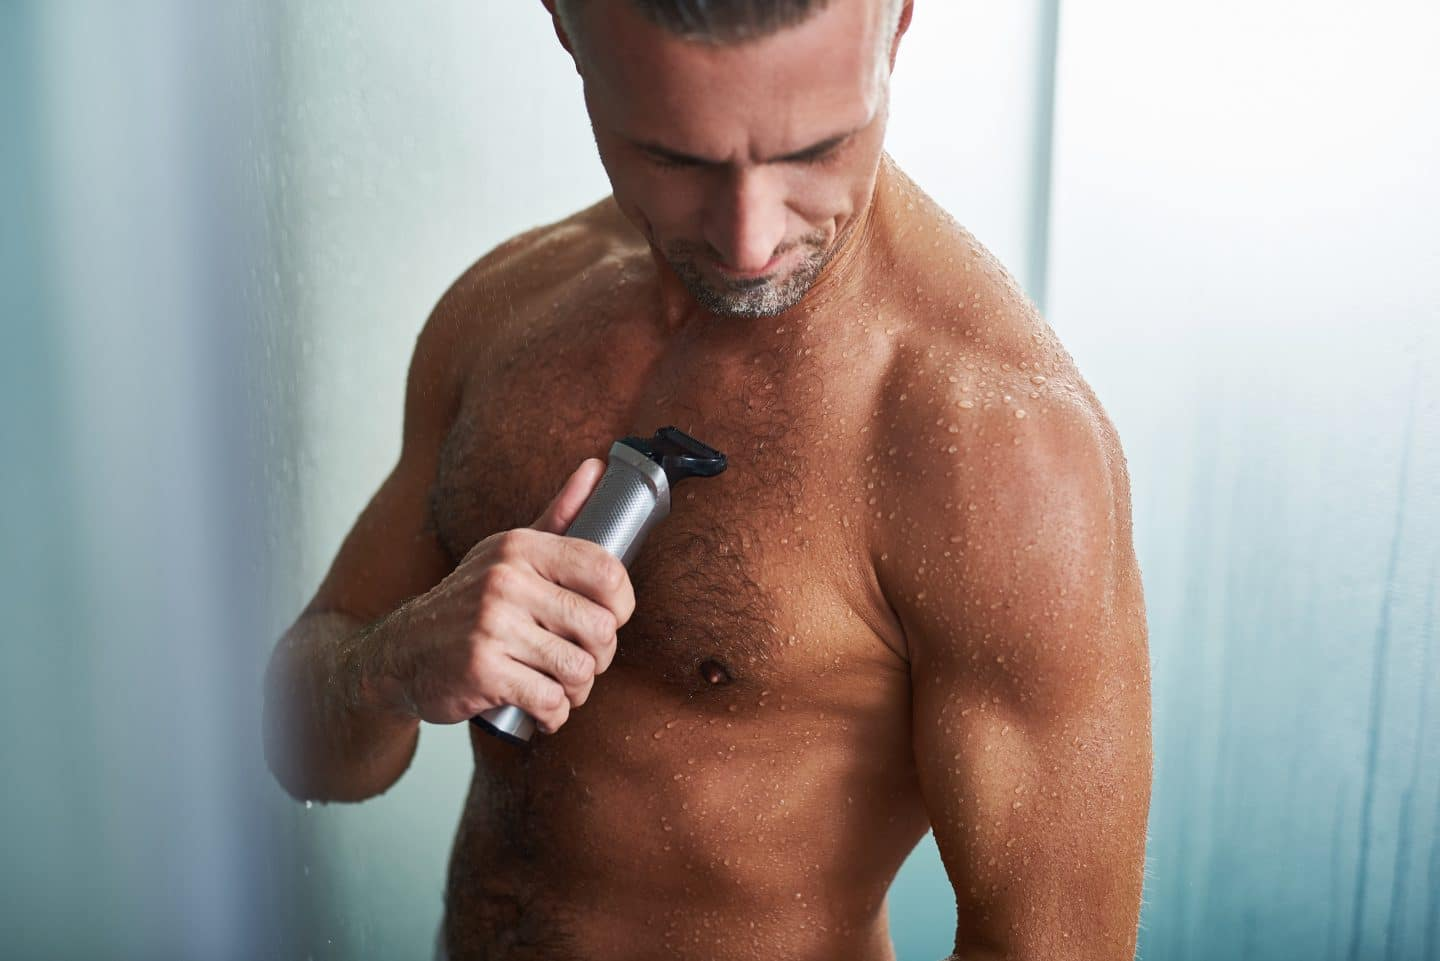 5 Things To Consider Before Buying Body Grooming Devices